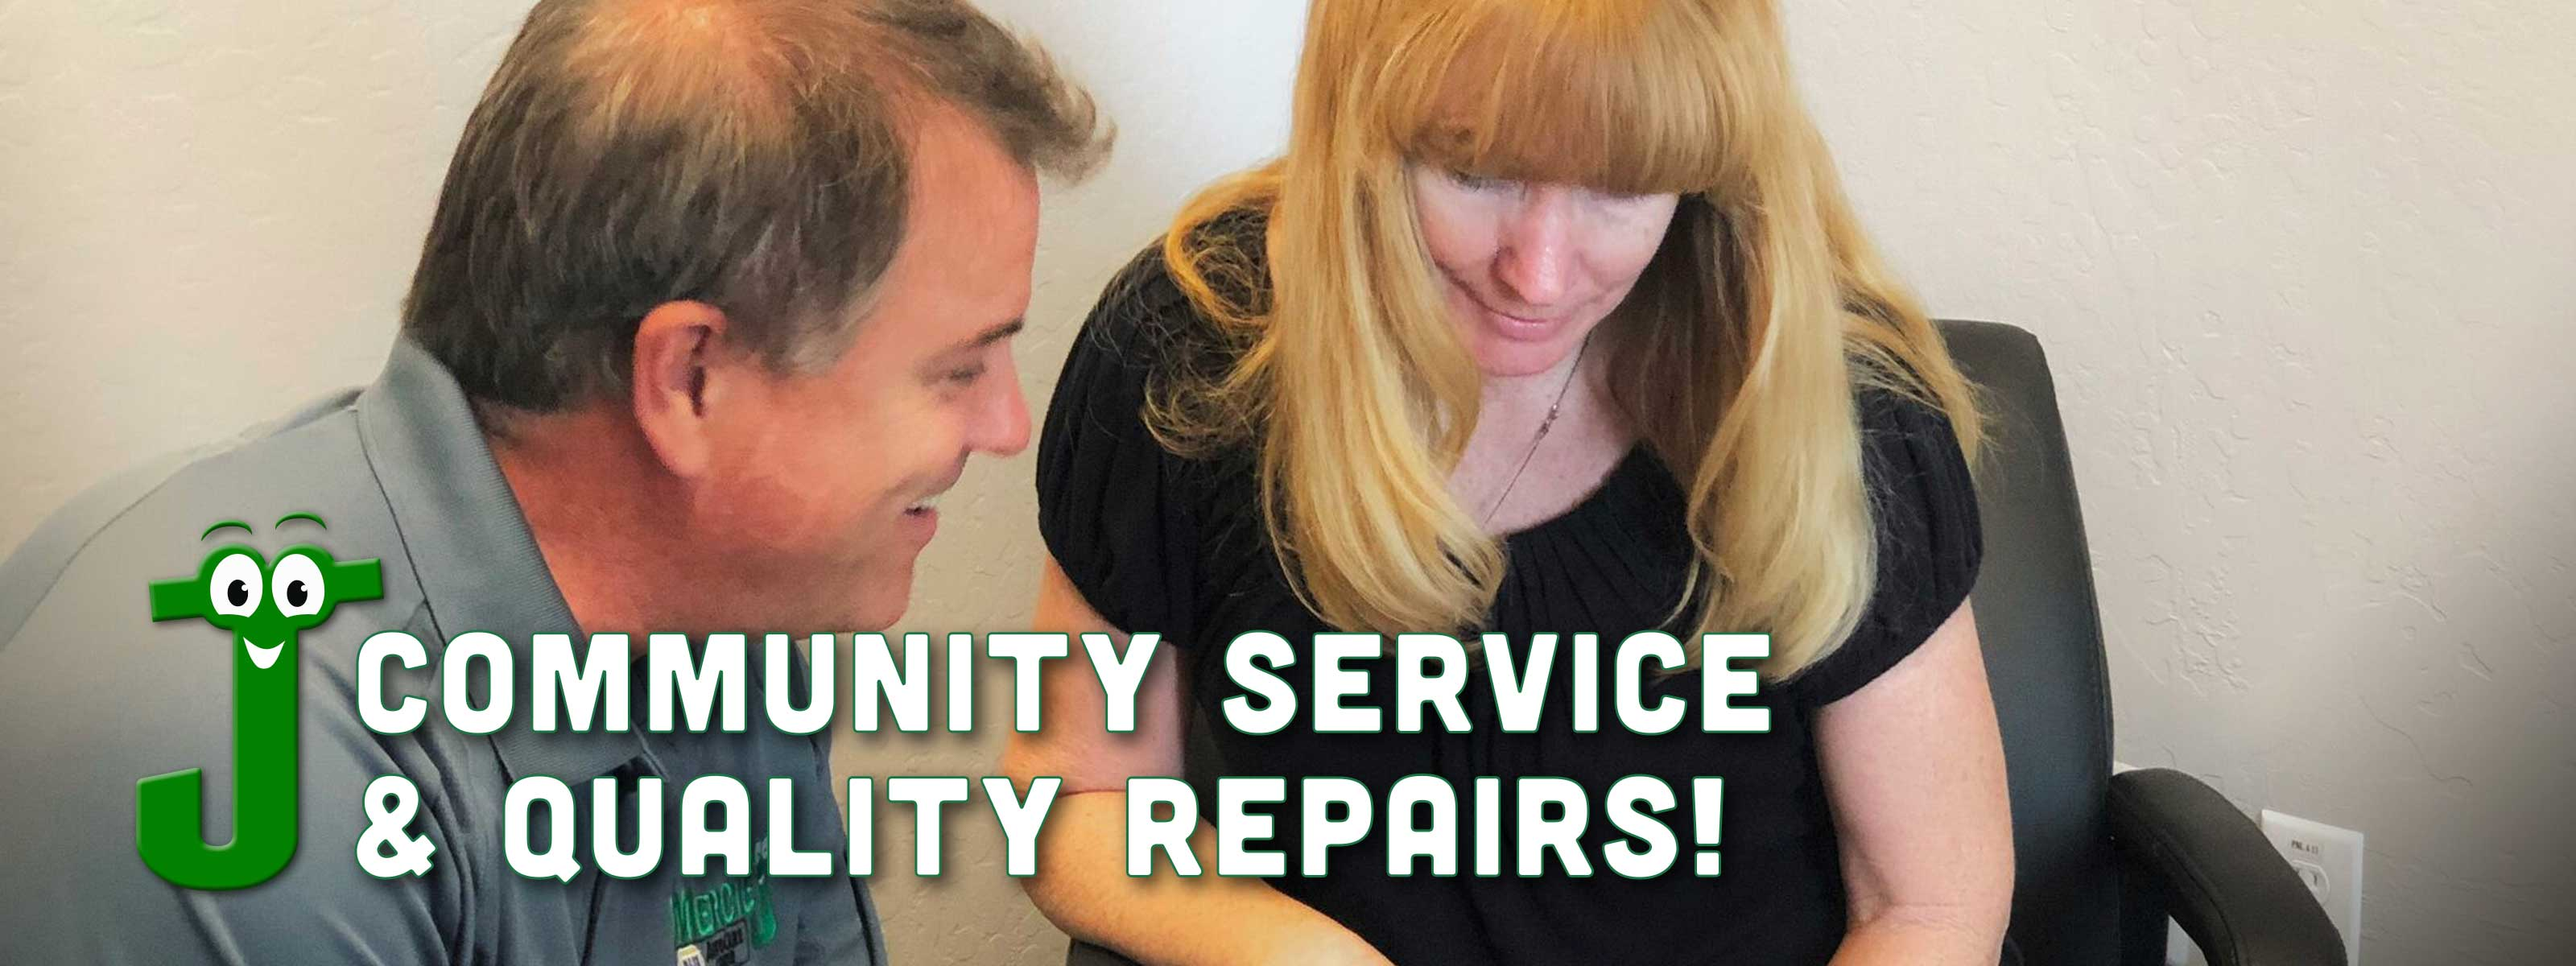 Community service and quality repairs